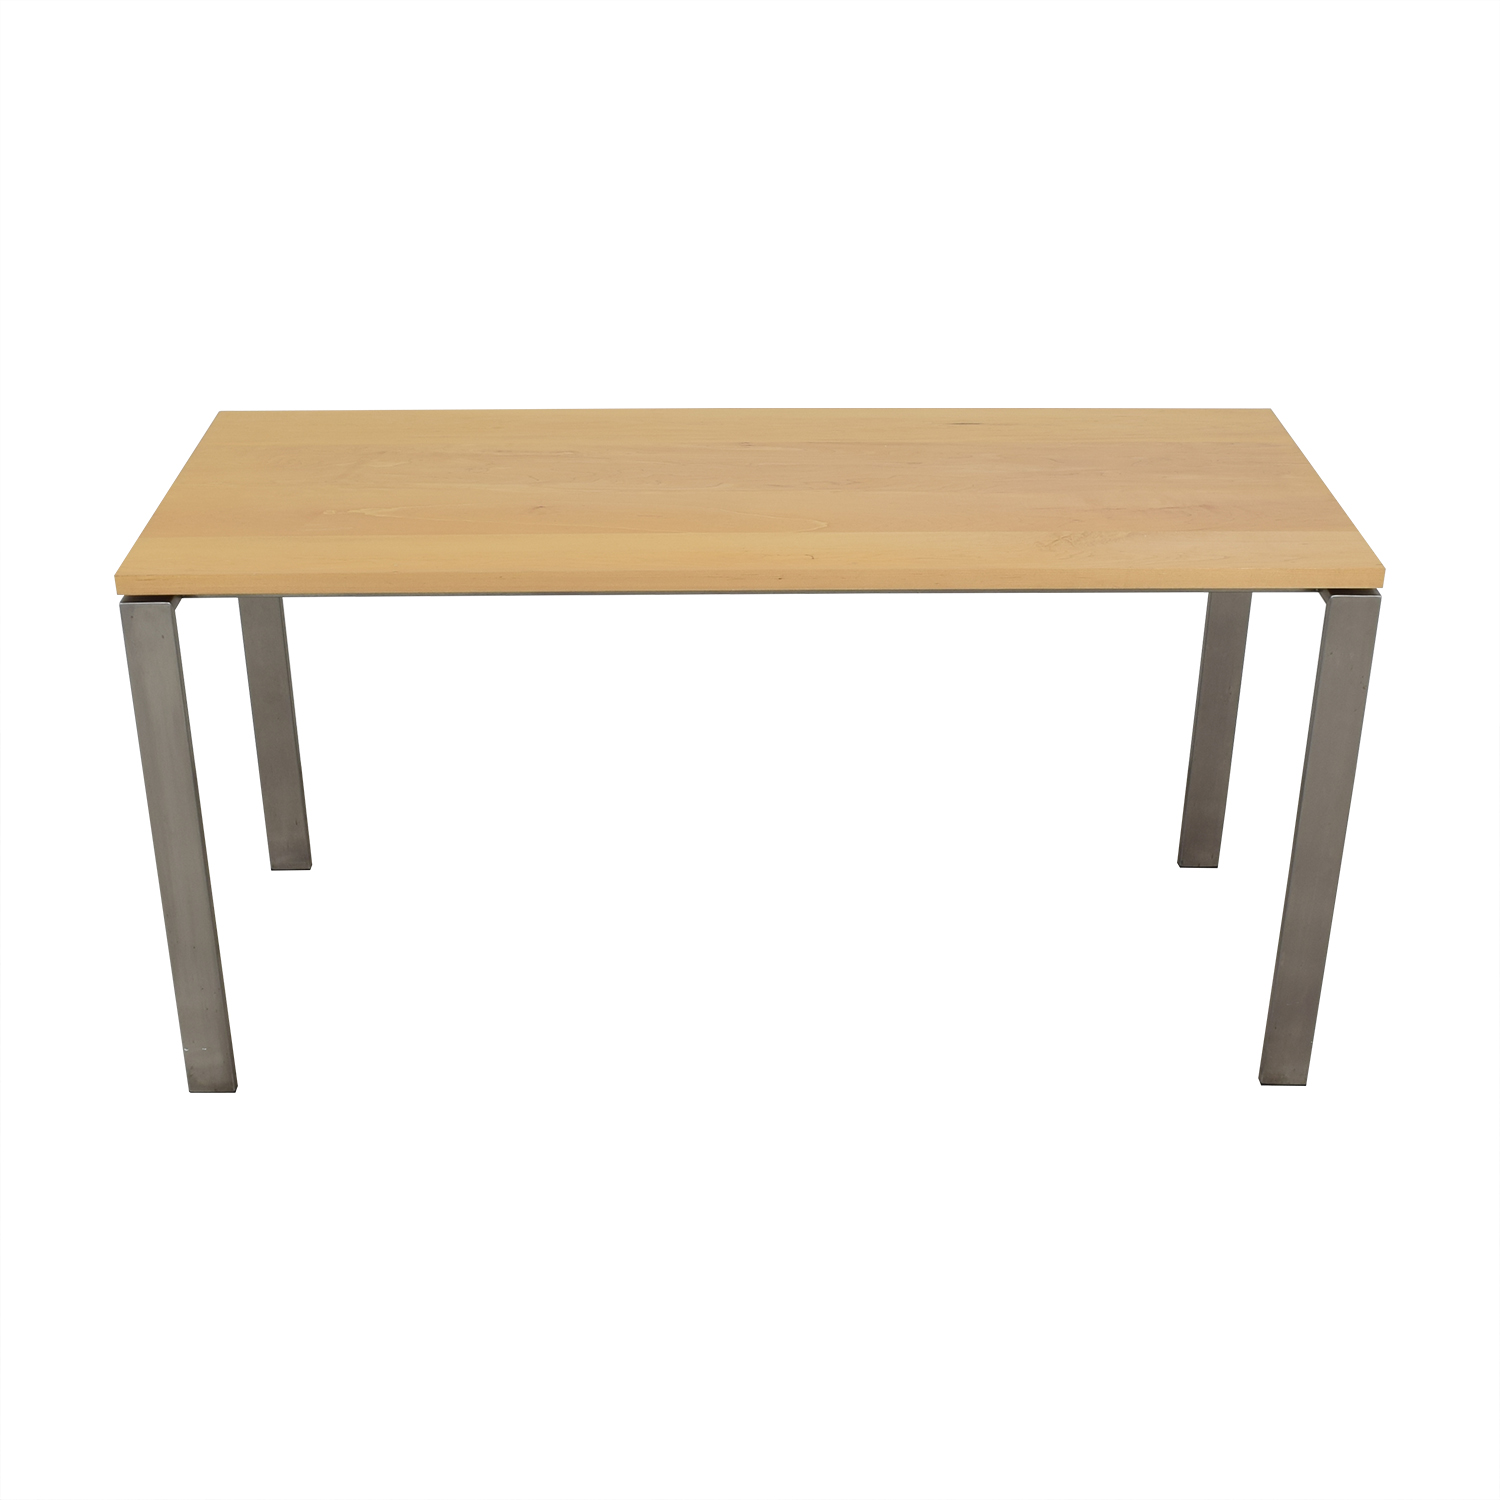 Room & Board Room & Board Rand Counter Height Table for sale